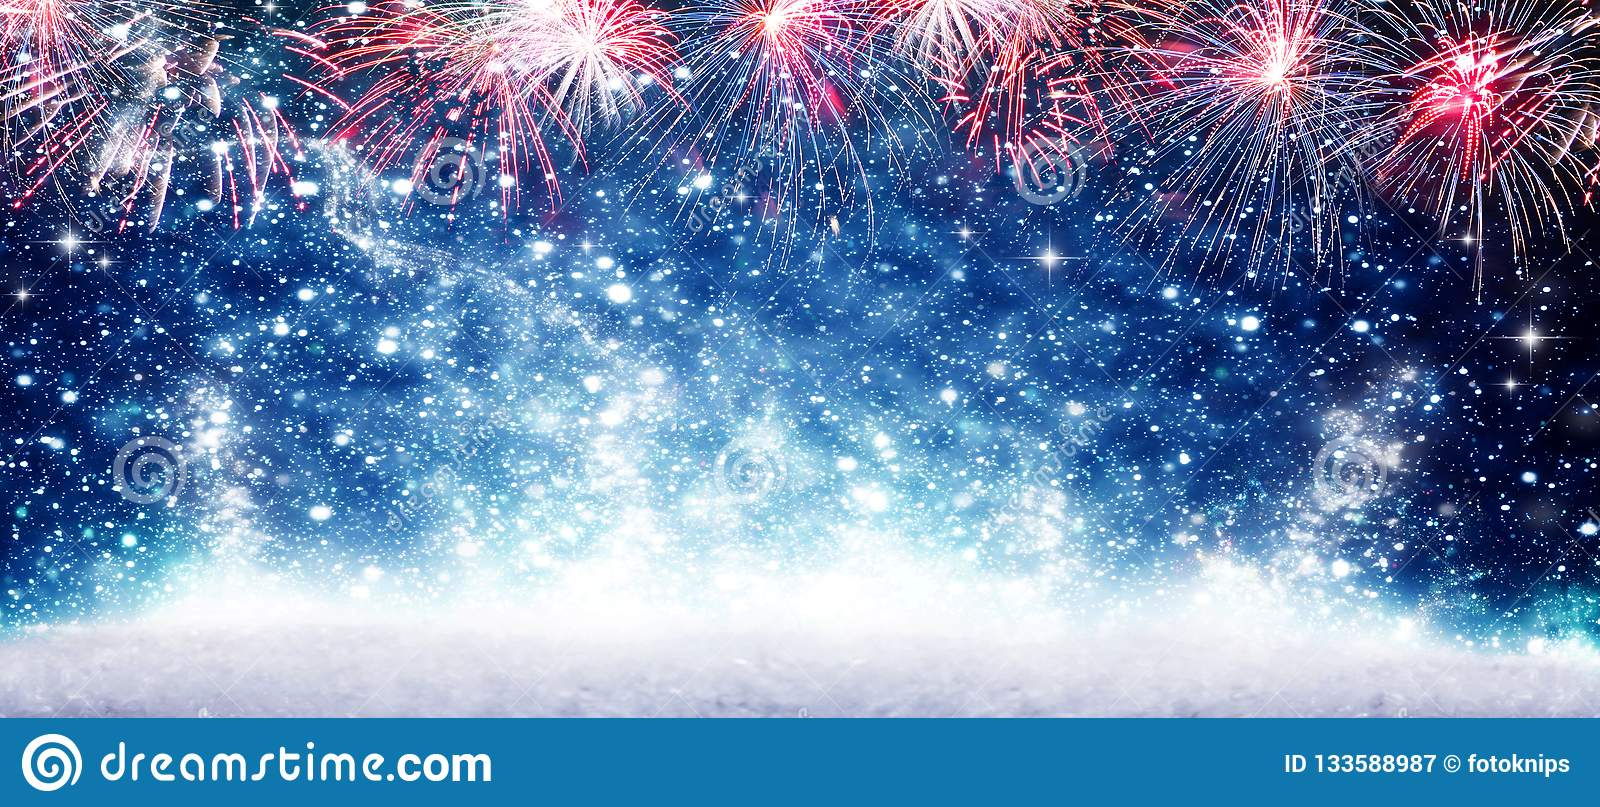 Fireworks, blue background New Year#s Eve